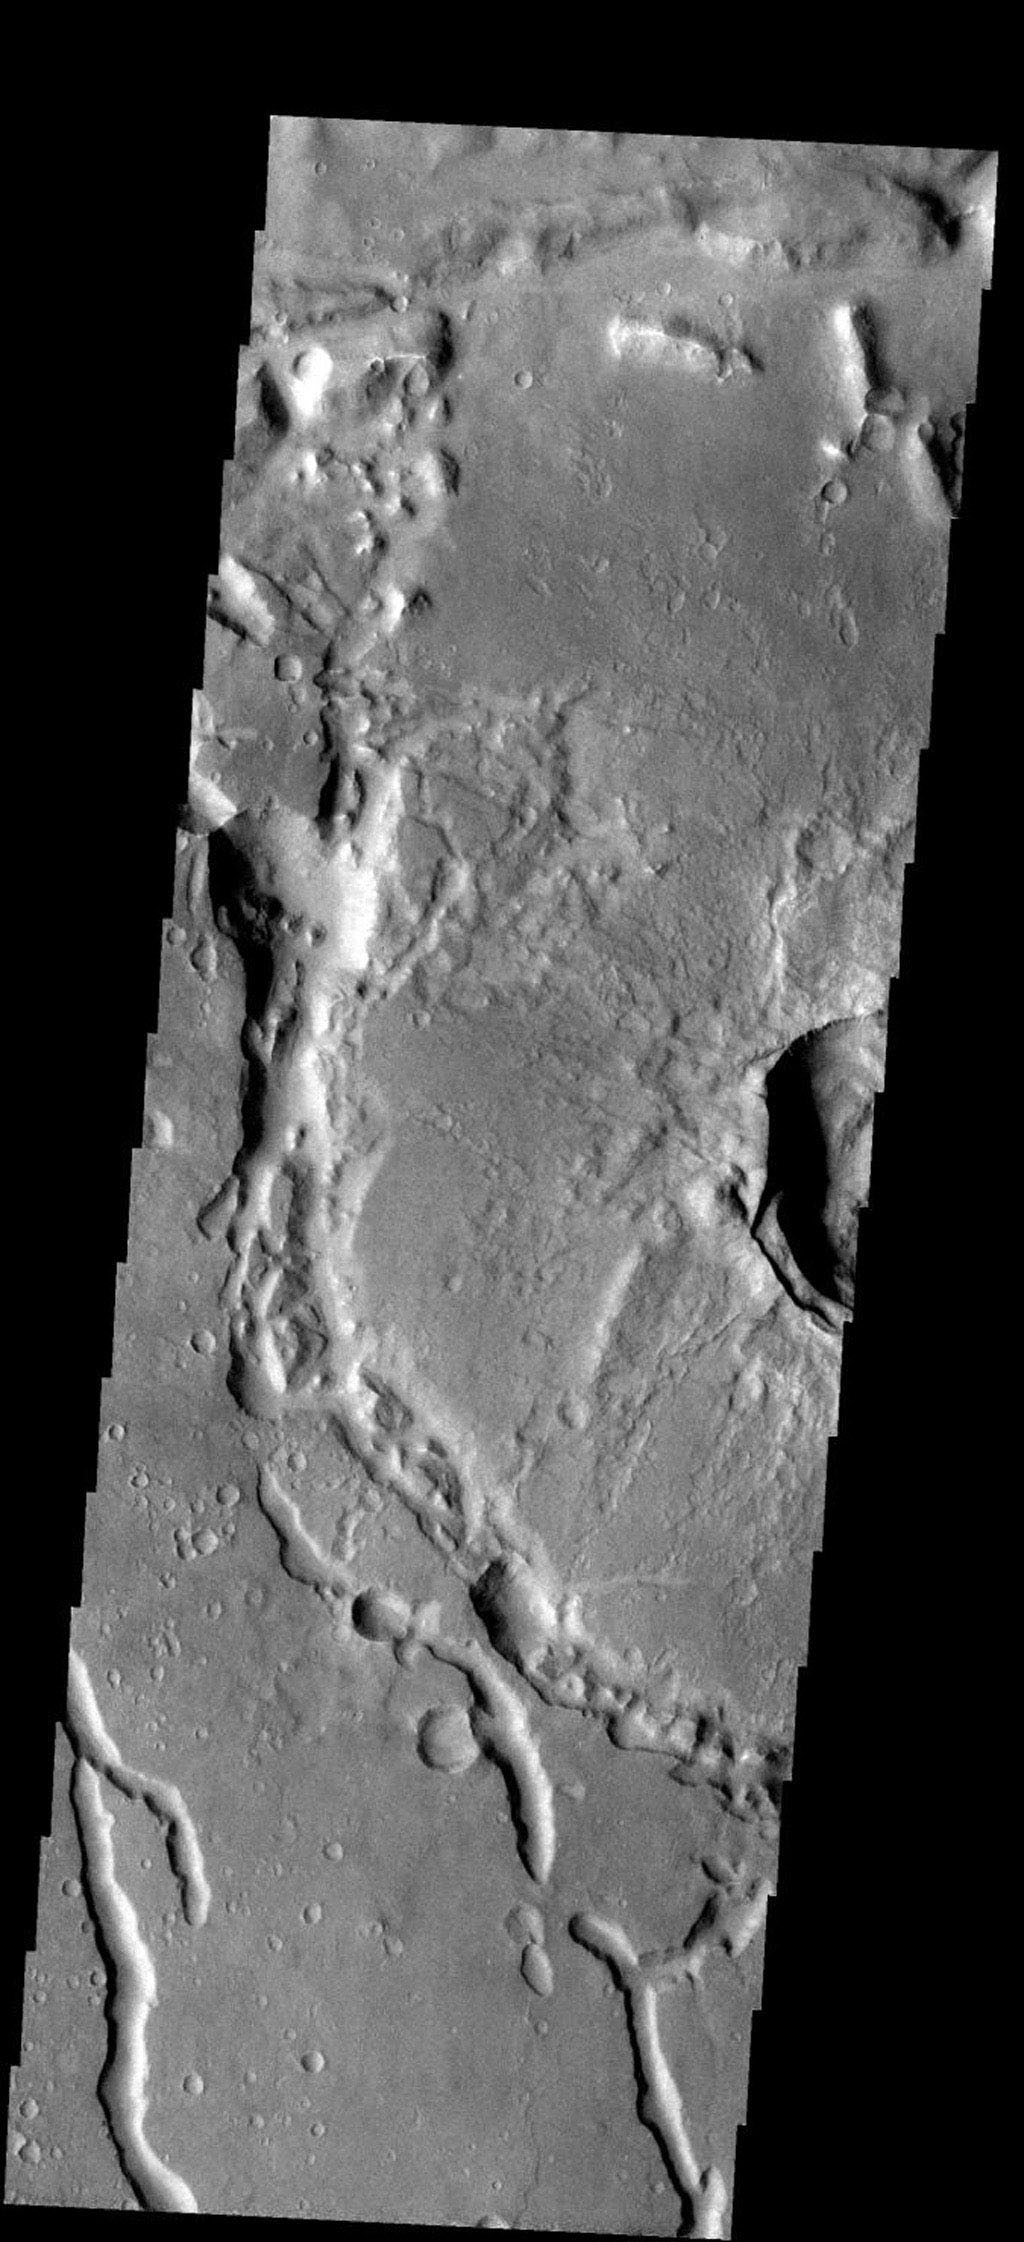 The discontinuous channels in this image are collapsed lava tubes on Mars as seen by NASA's 2001 Mars Odyssey spacecraft.